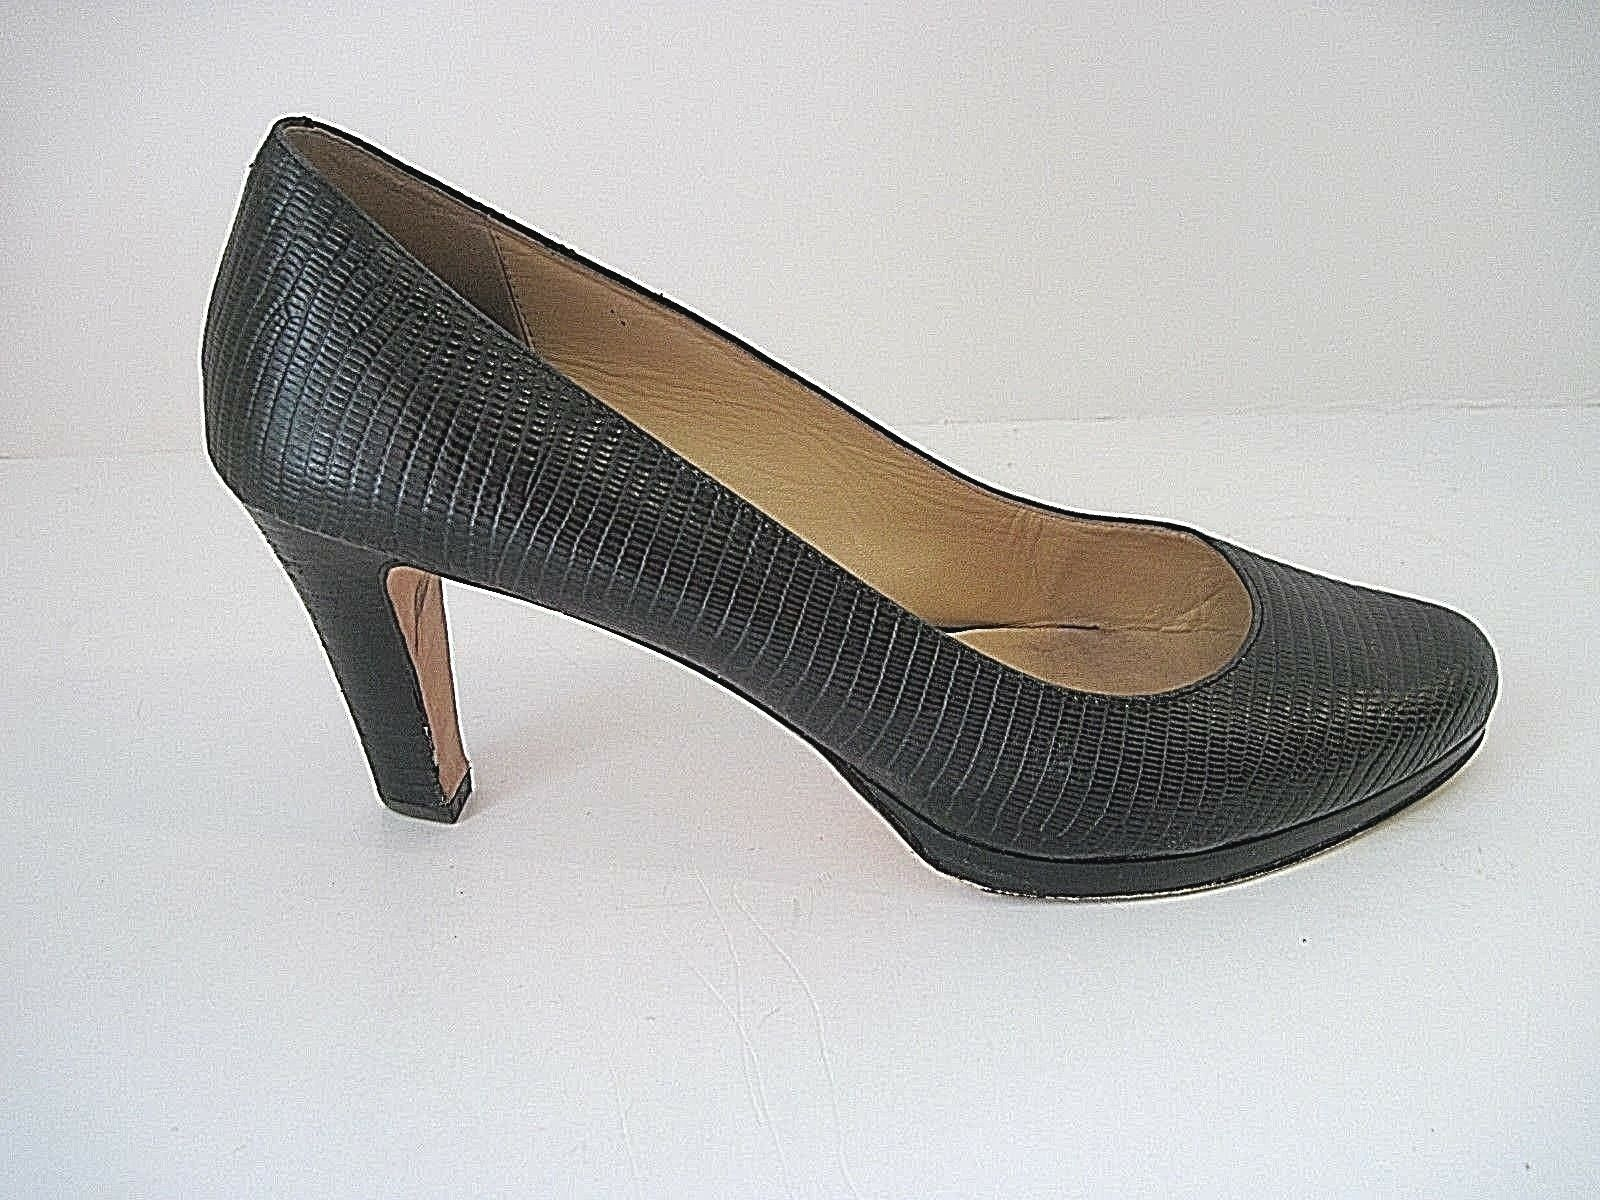 Cole Haan Black Leather Heels Pumps - Size 9B